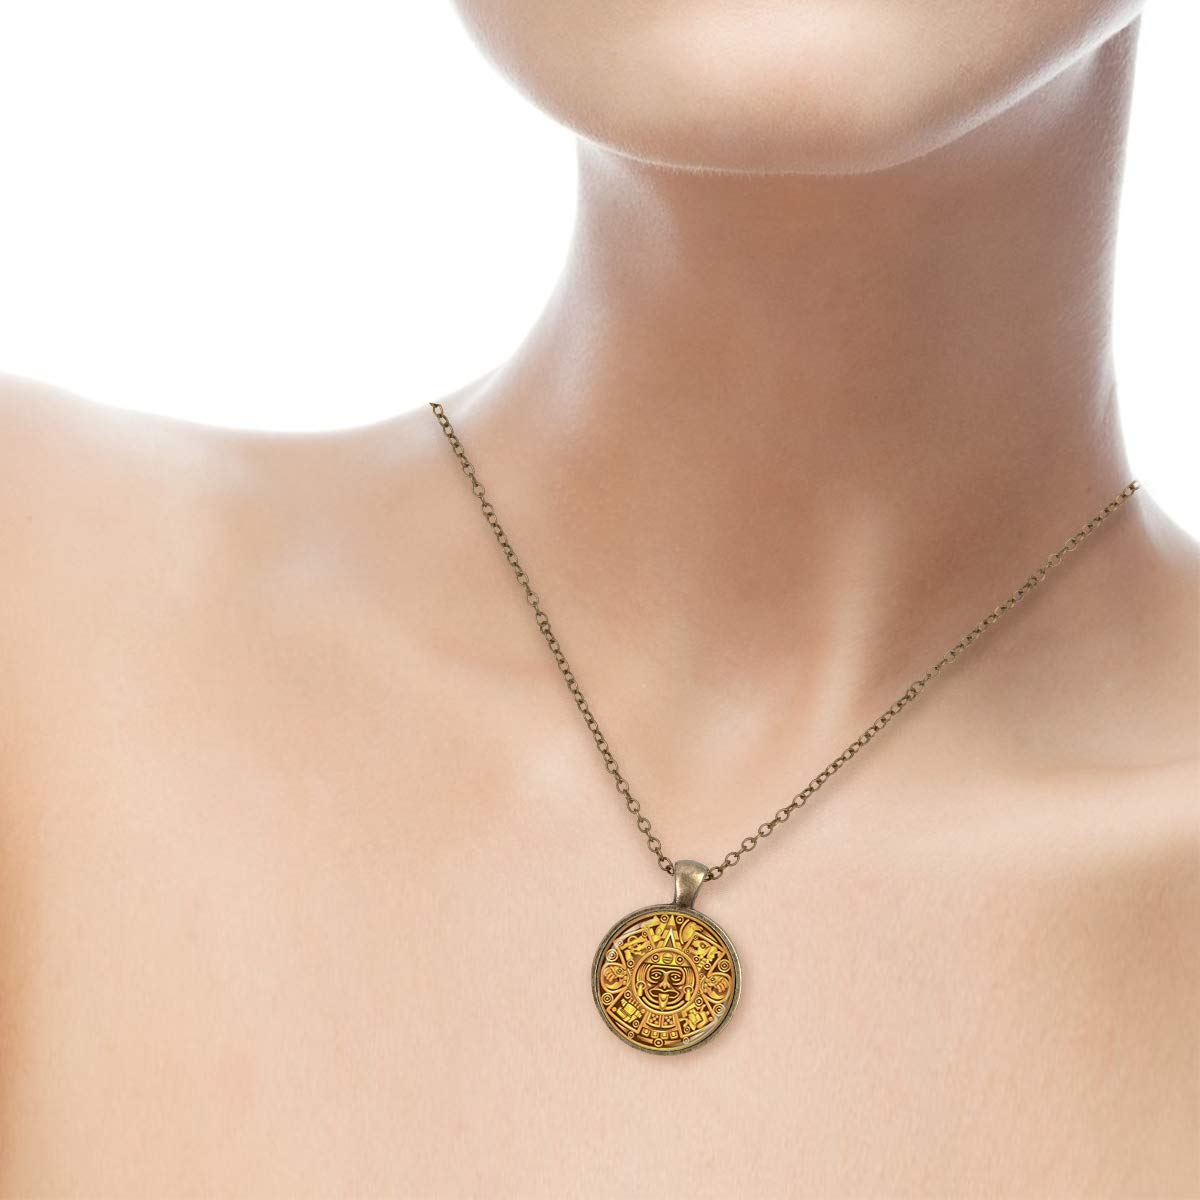 Lightrain Our Motif The Egyptian Pharaoh Pendant Necklace Vintage Bronze Chain Statement Necklace Handmade Jewelry Gifts